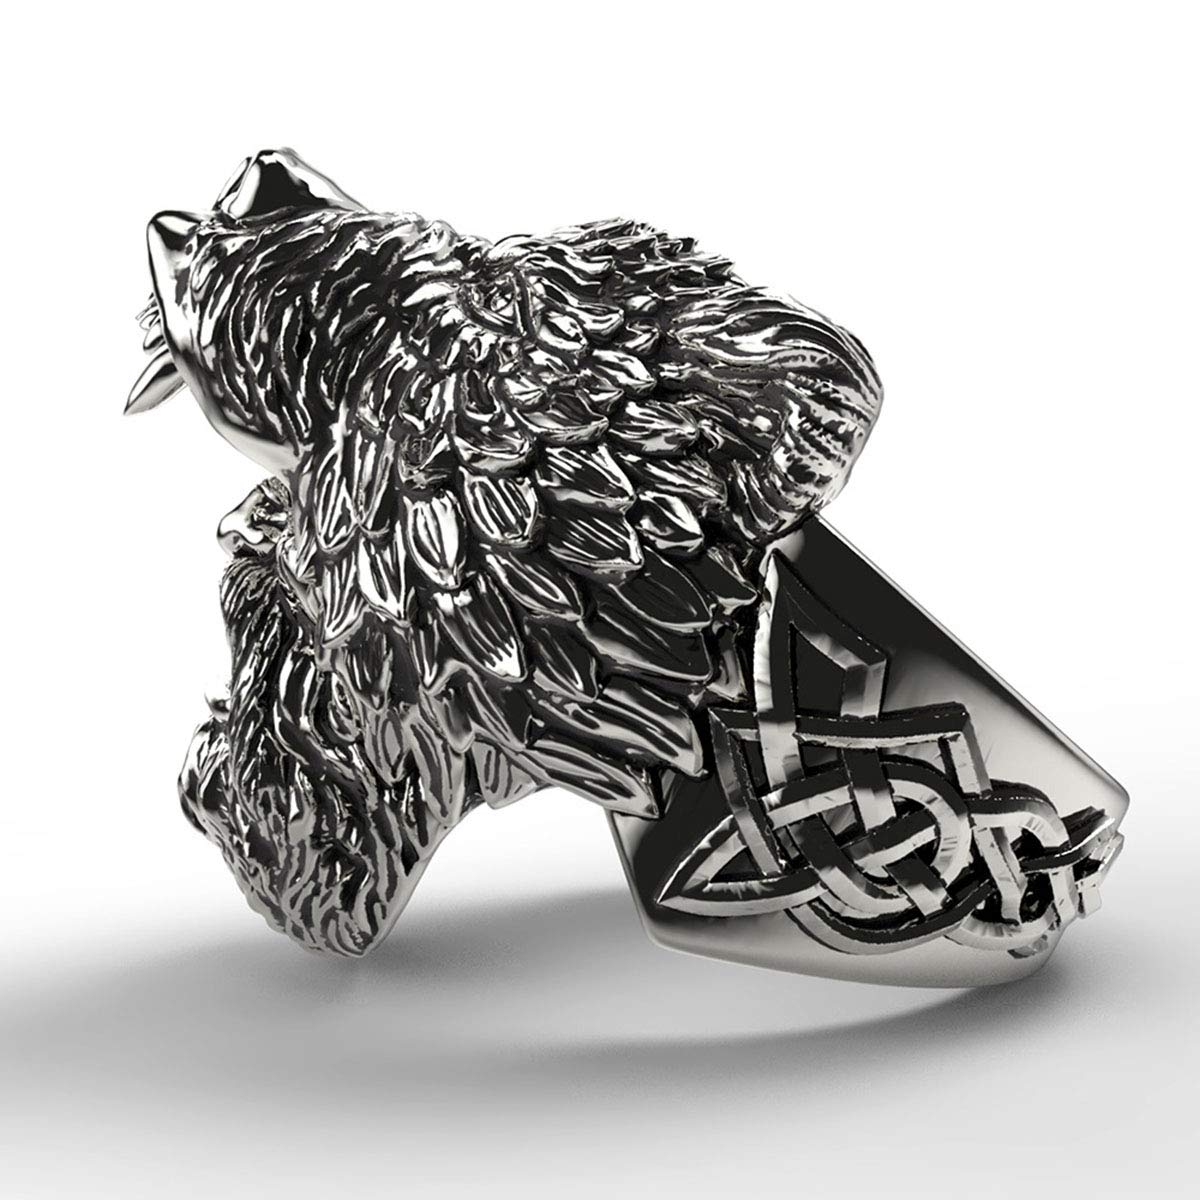 Ztuo Stainless Steel Rings for Men Viking Bear Silver Black Titanium Biker Band Cool Jewelry Size 8-14